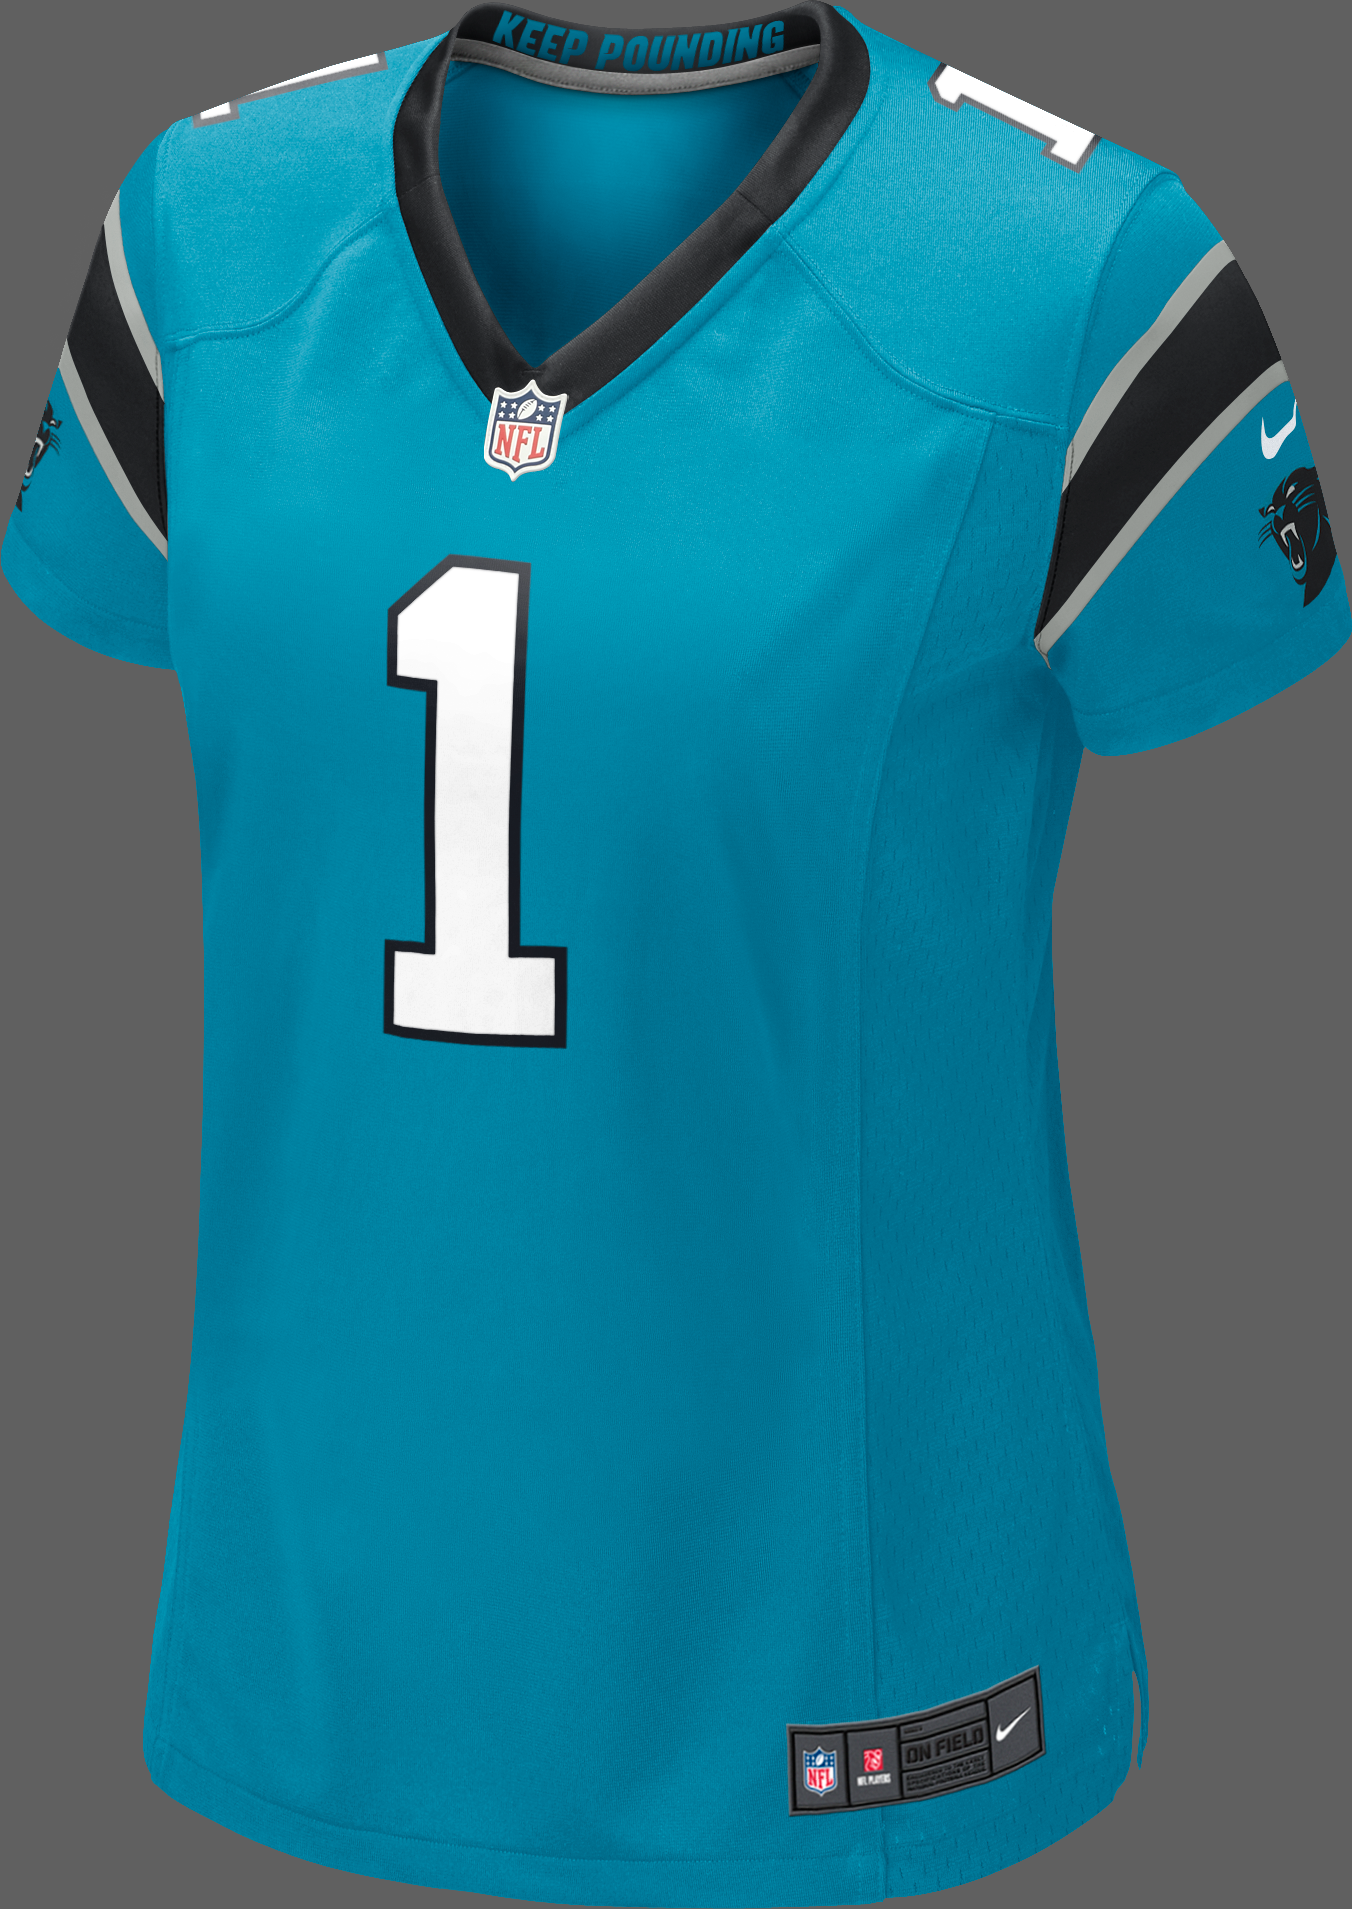 Women s Nike Carolina Panthers Jersey - Blue - Newton  f0efa4a48